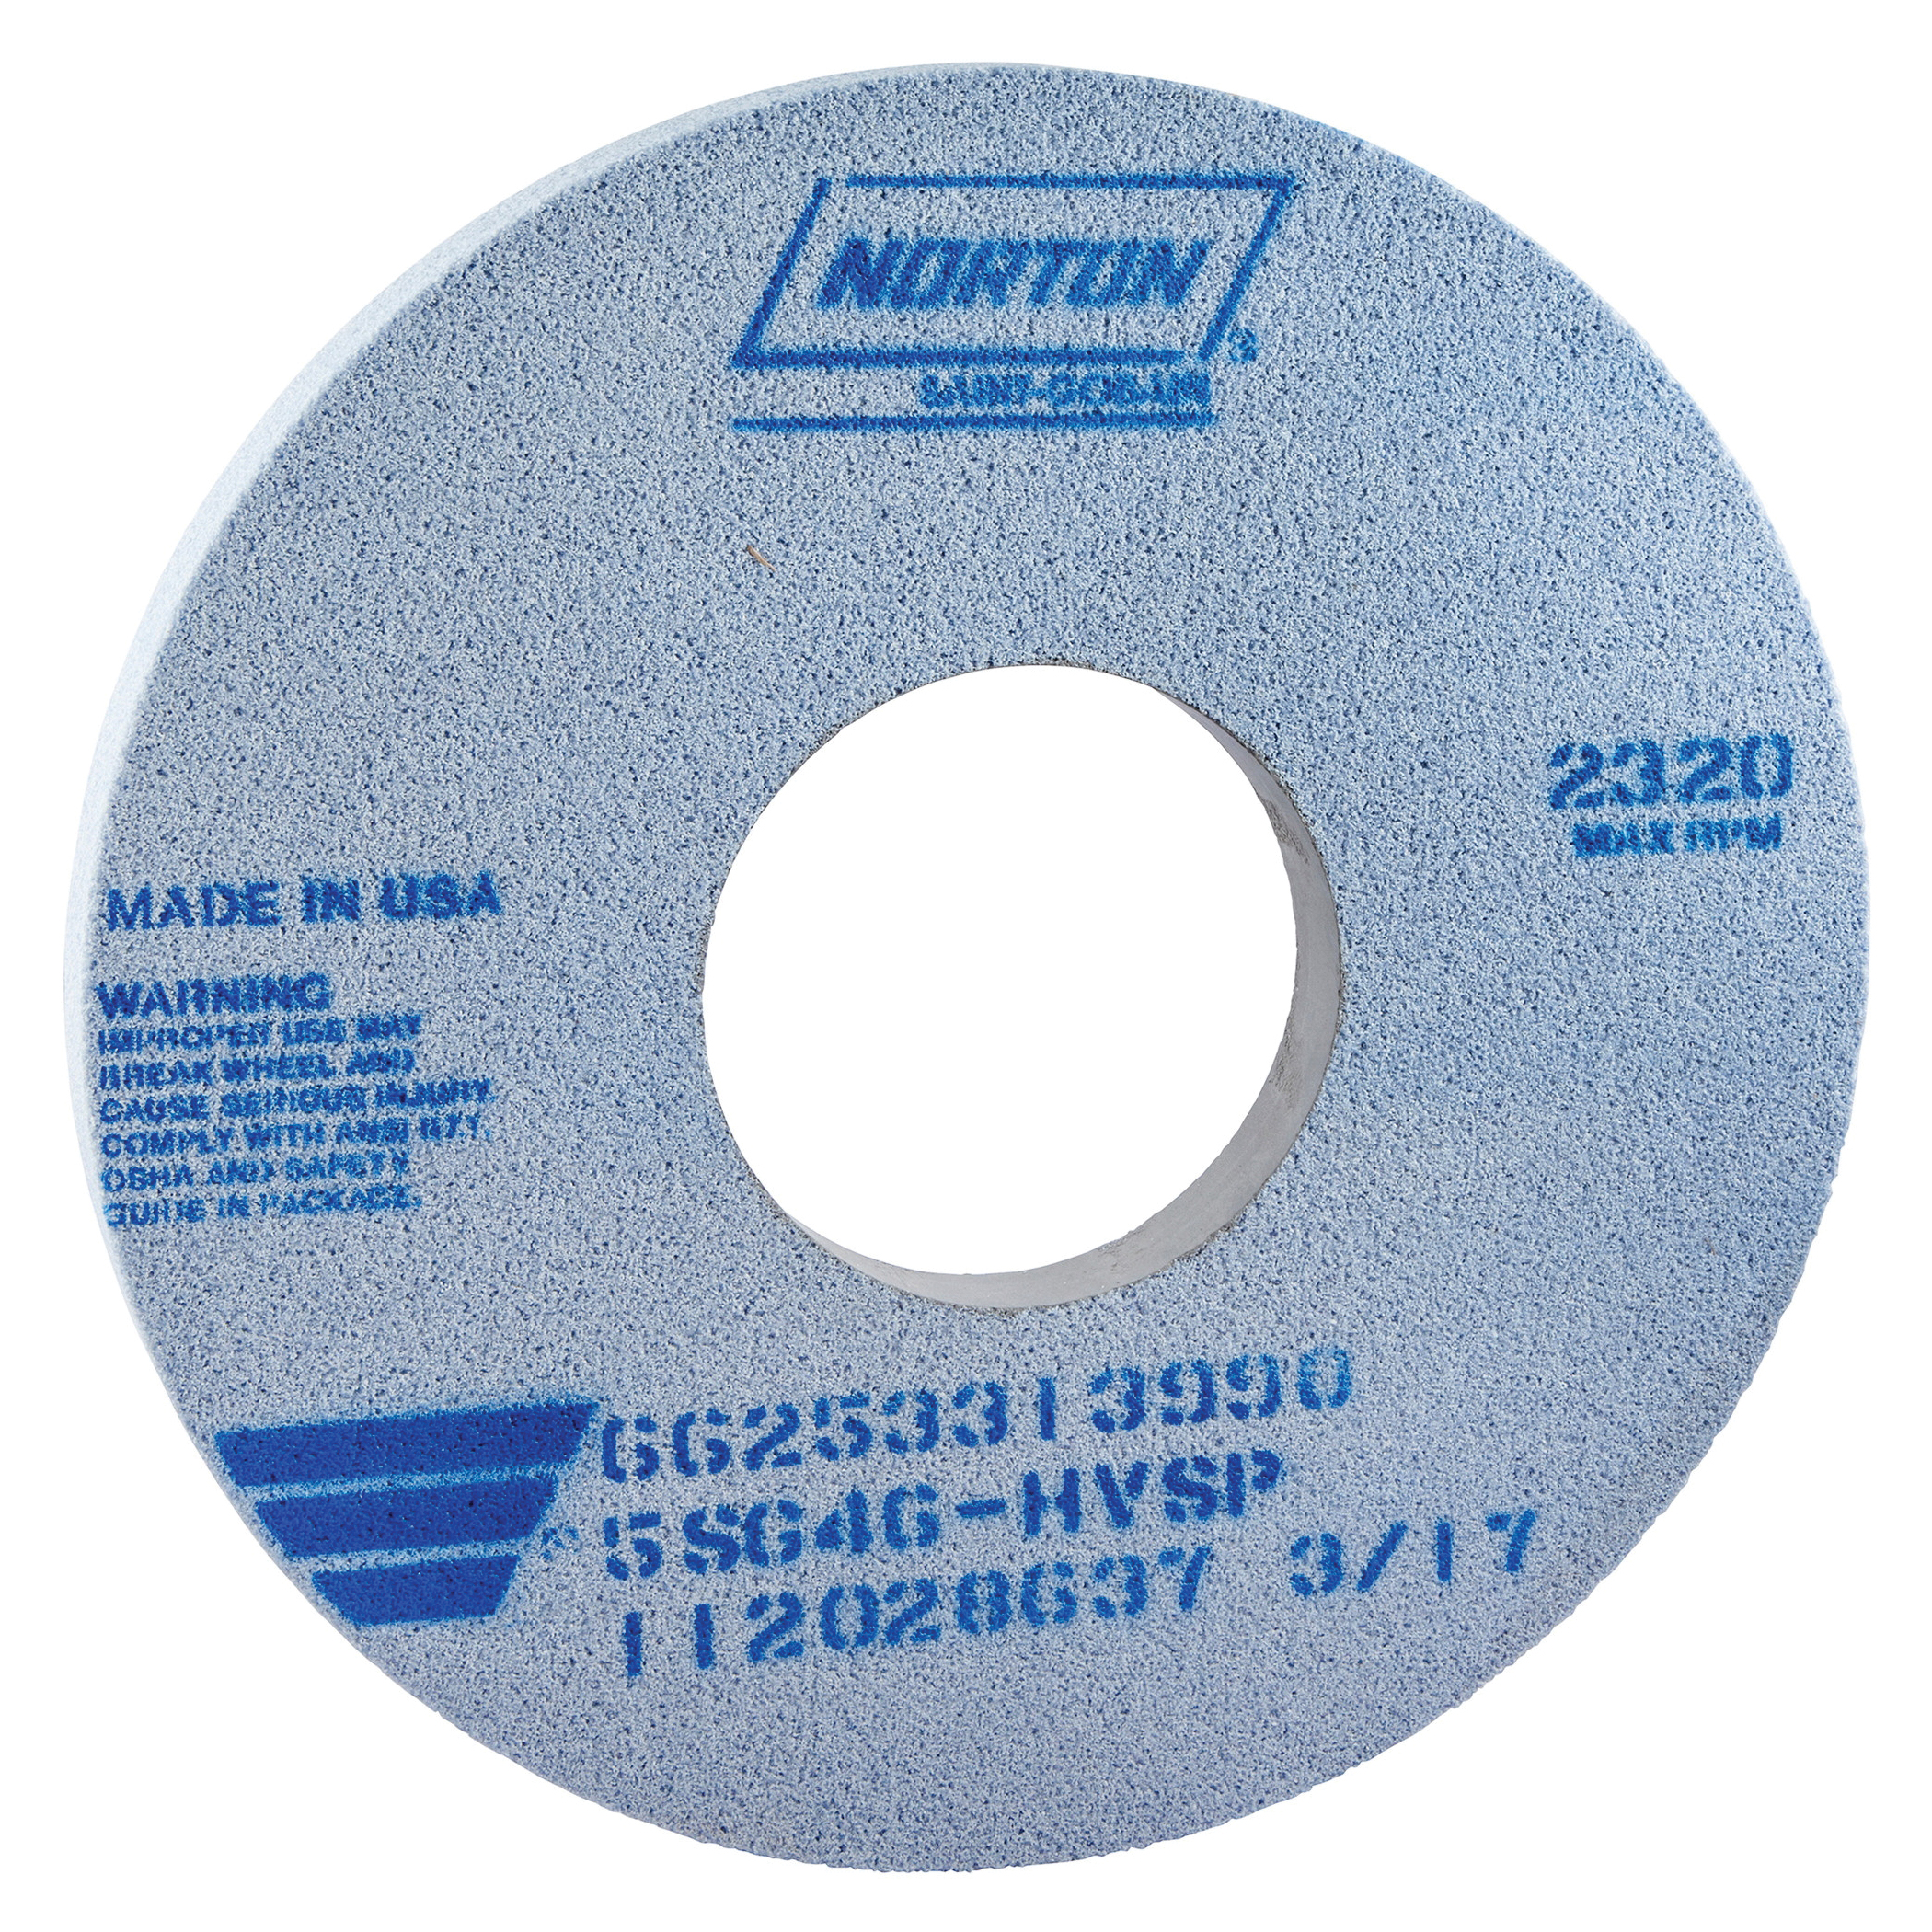 Norton® 66253364108 5SG Straight Toolroom Wheel, 14 in Dia x 1 in THK, 5 in Center Hole, 46 Grit, Ceramic Alumina/Friable Aluminum Oxide Abrasive